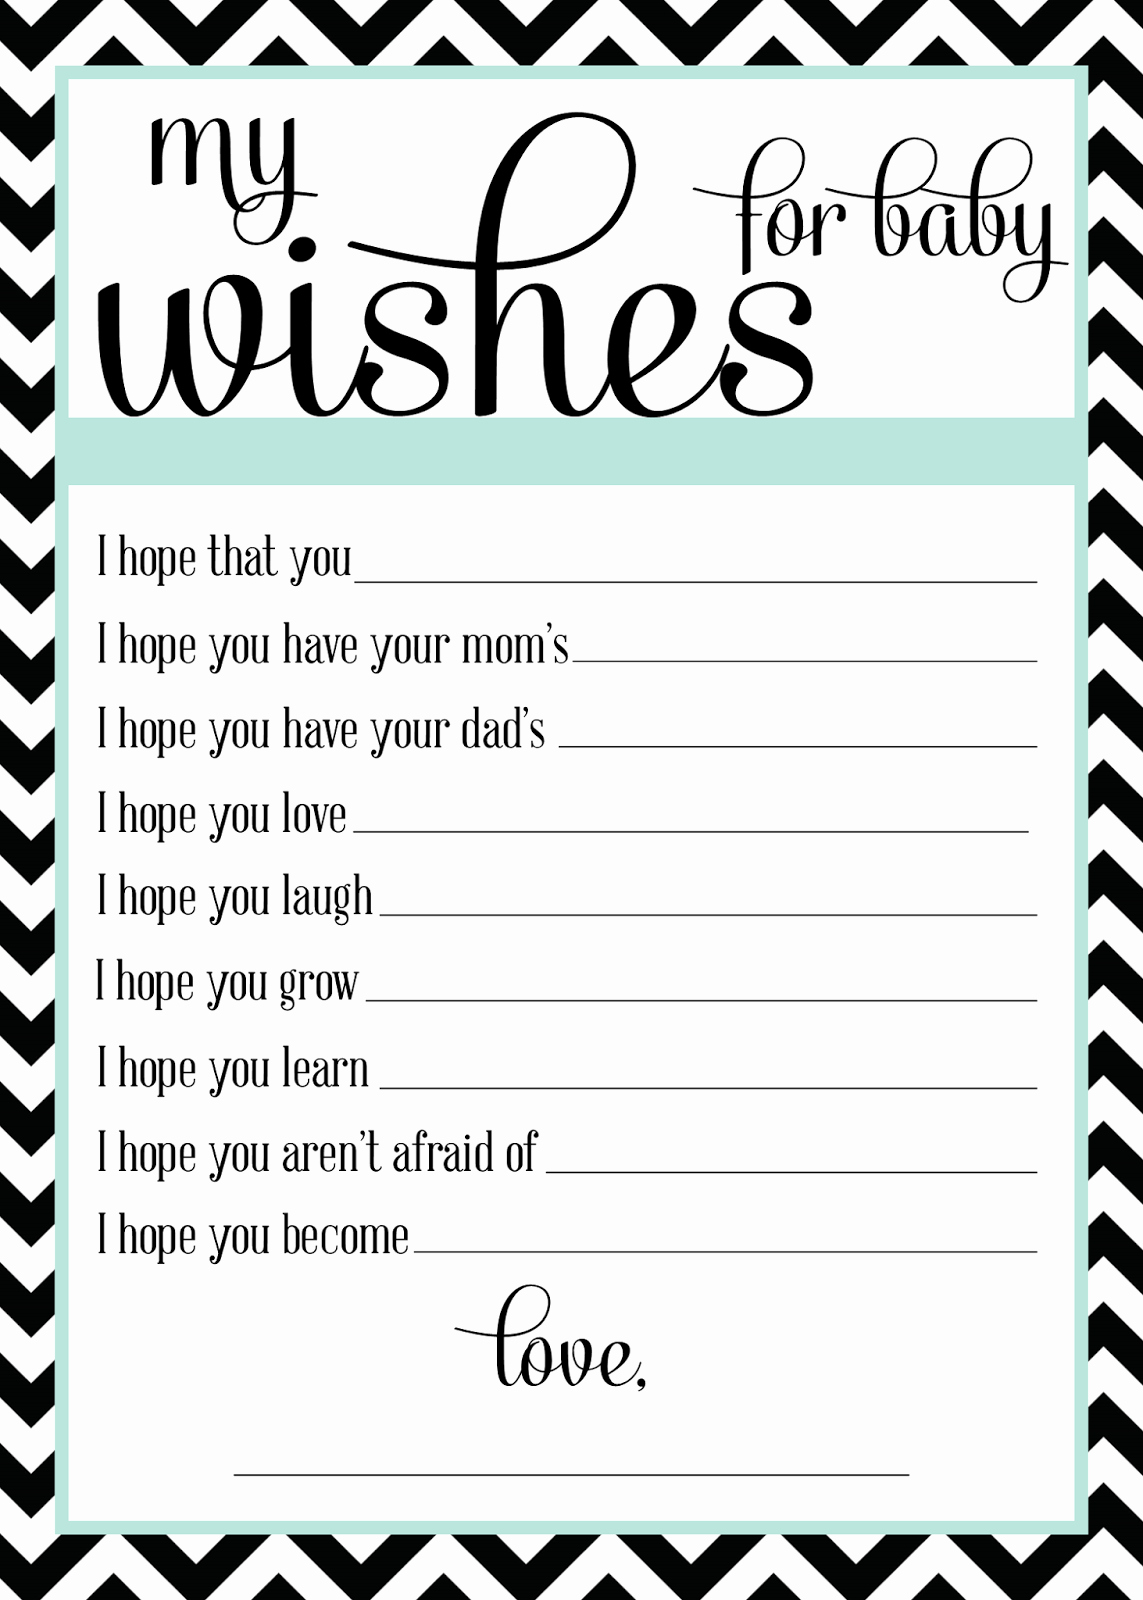 Wishes for Baby Template Elegant Sugar Queens October 2013